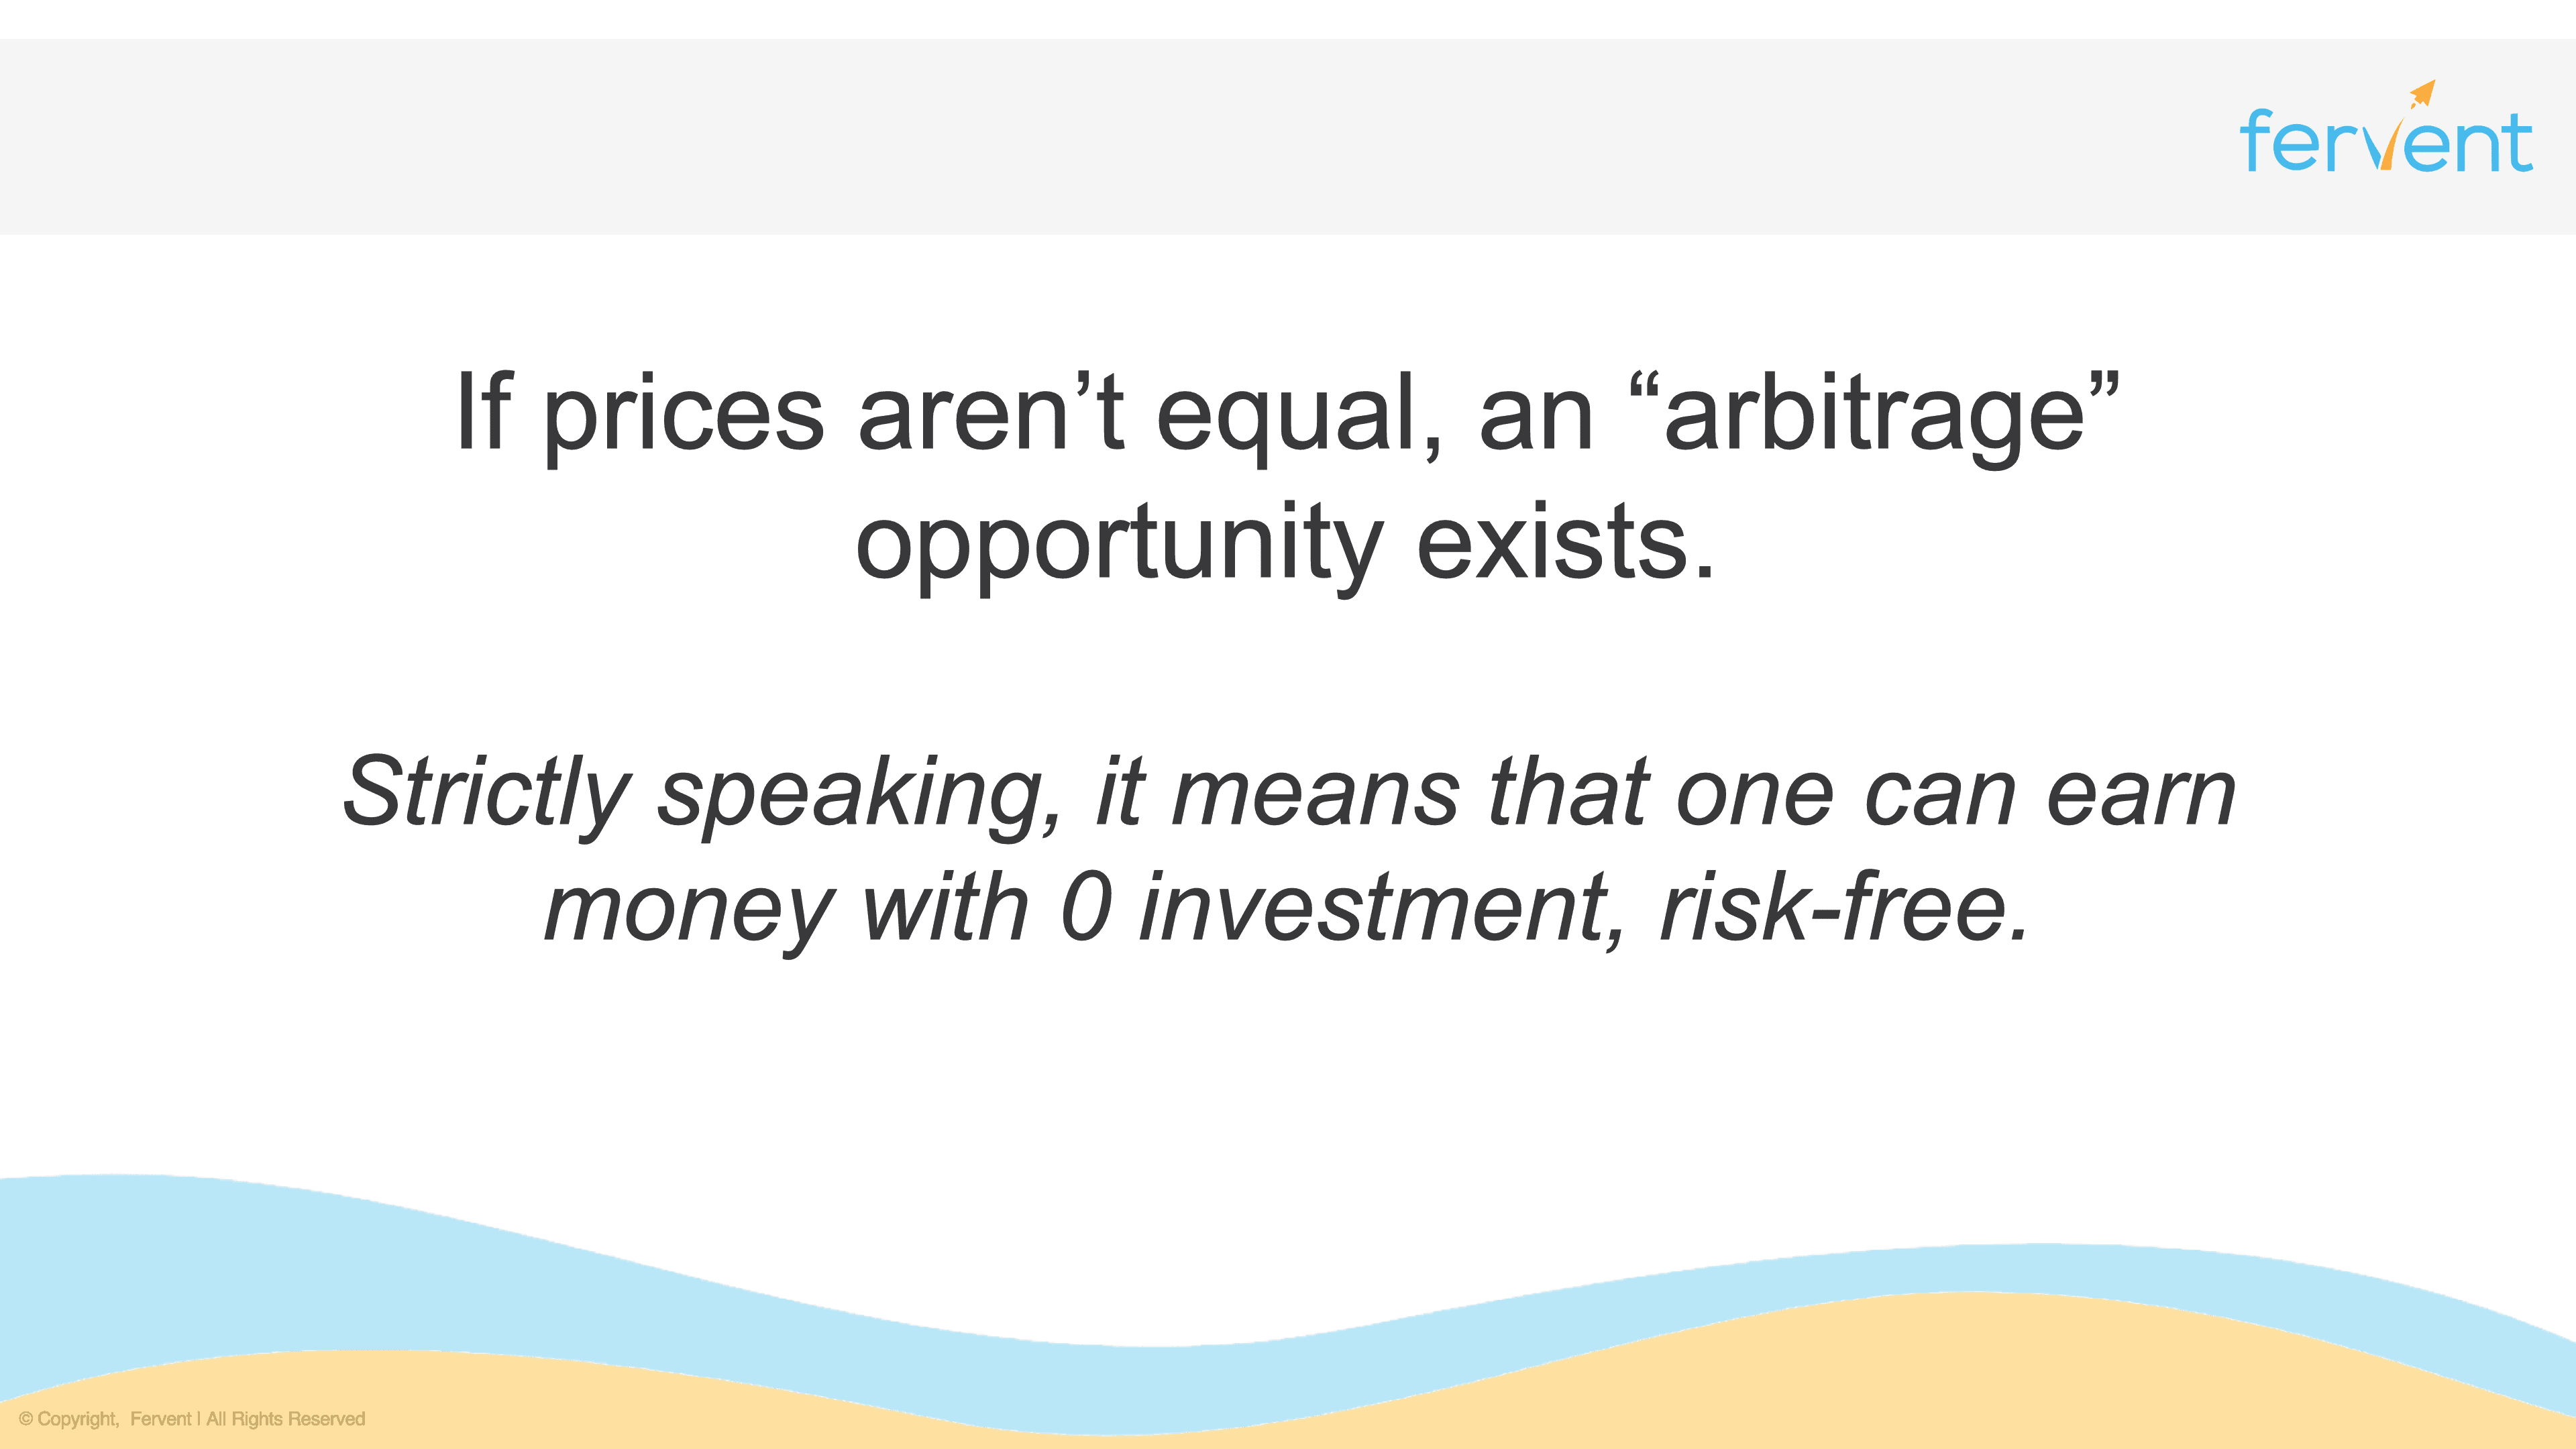 Slide explaining arbitrage in the context of investment fundamentals